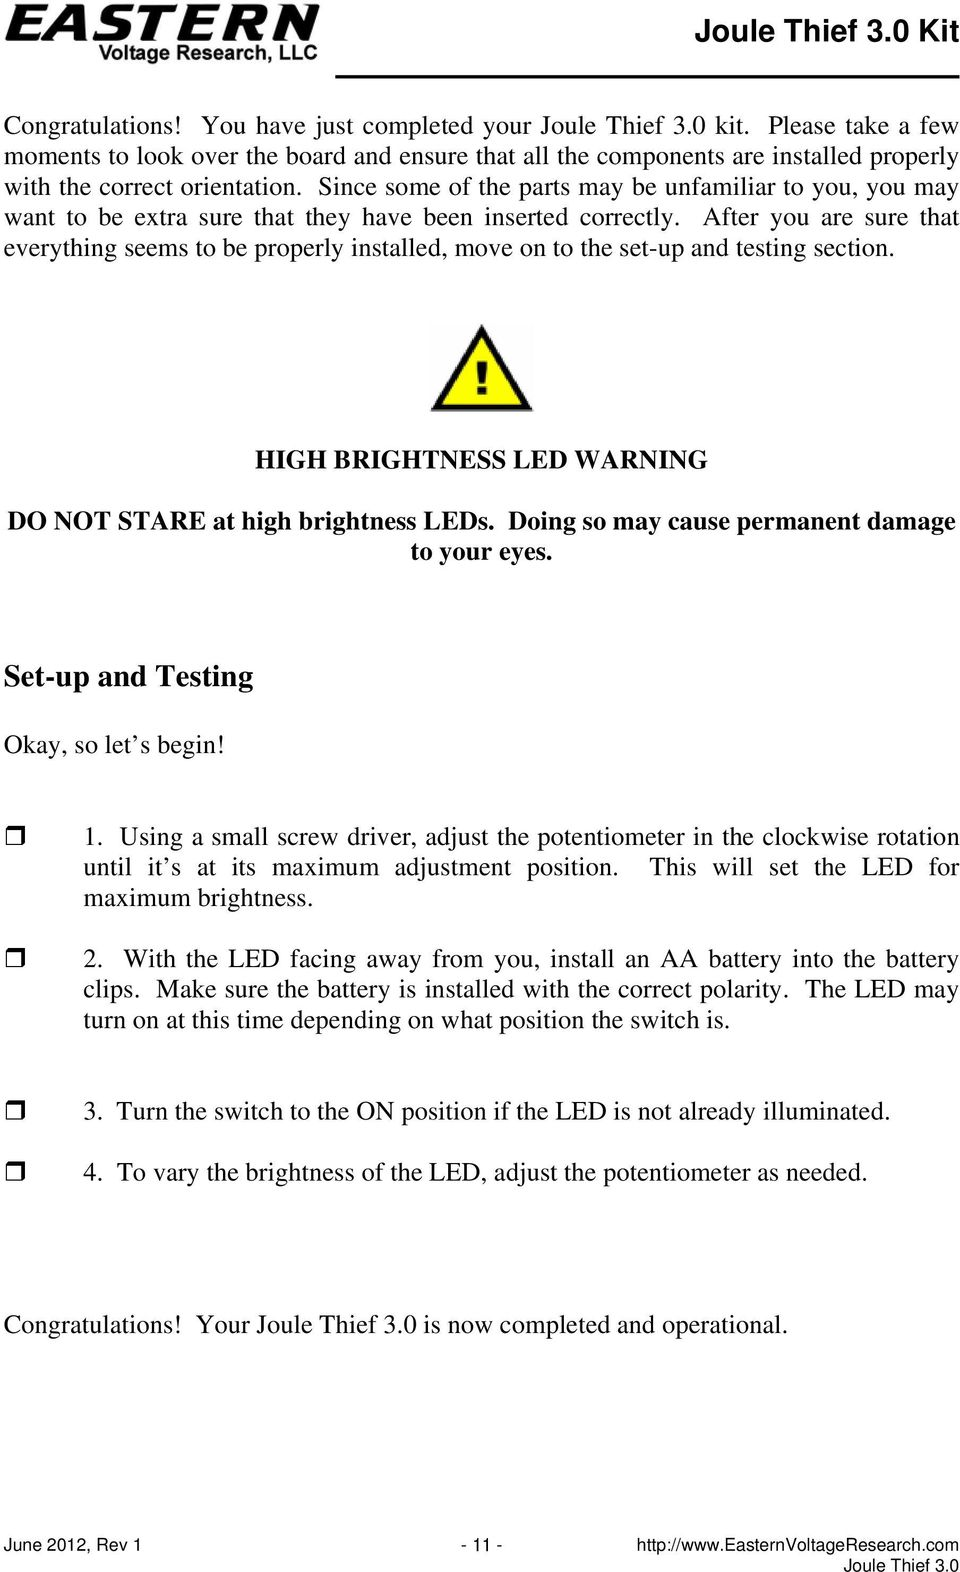 After you are sure that everything seems to be properly installed, move on to the set-up and testing section. HIGH BRIGHTNESS LED WARNING DO NOT STARE at high brightness LEDs.